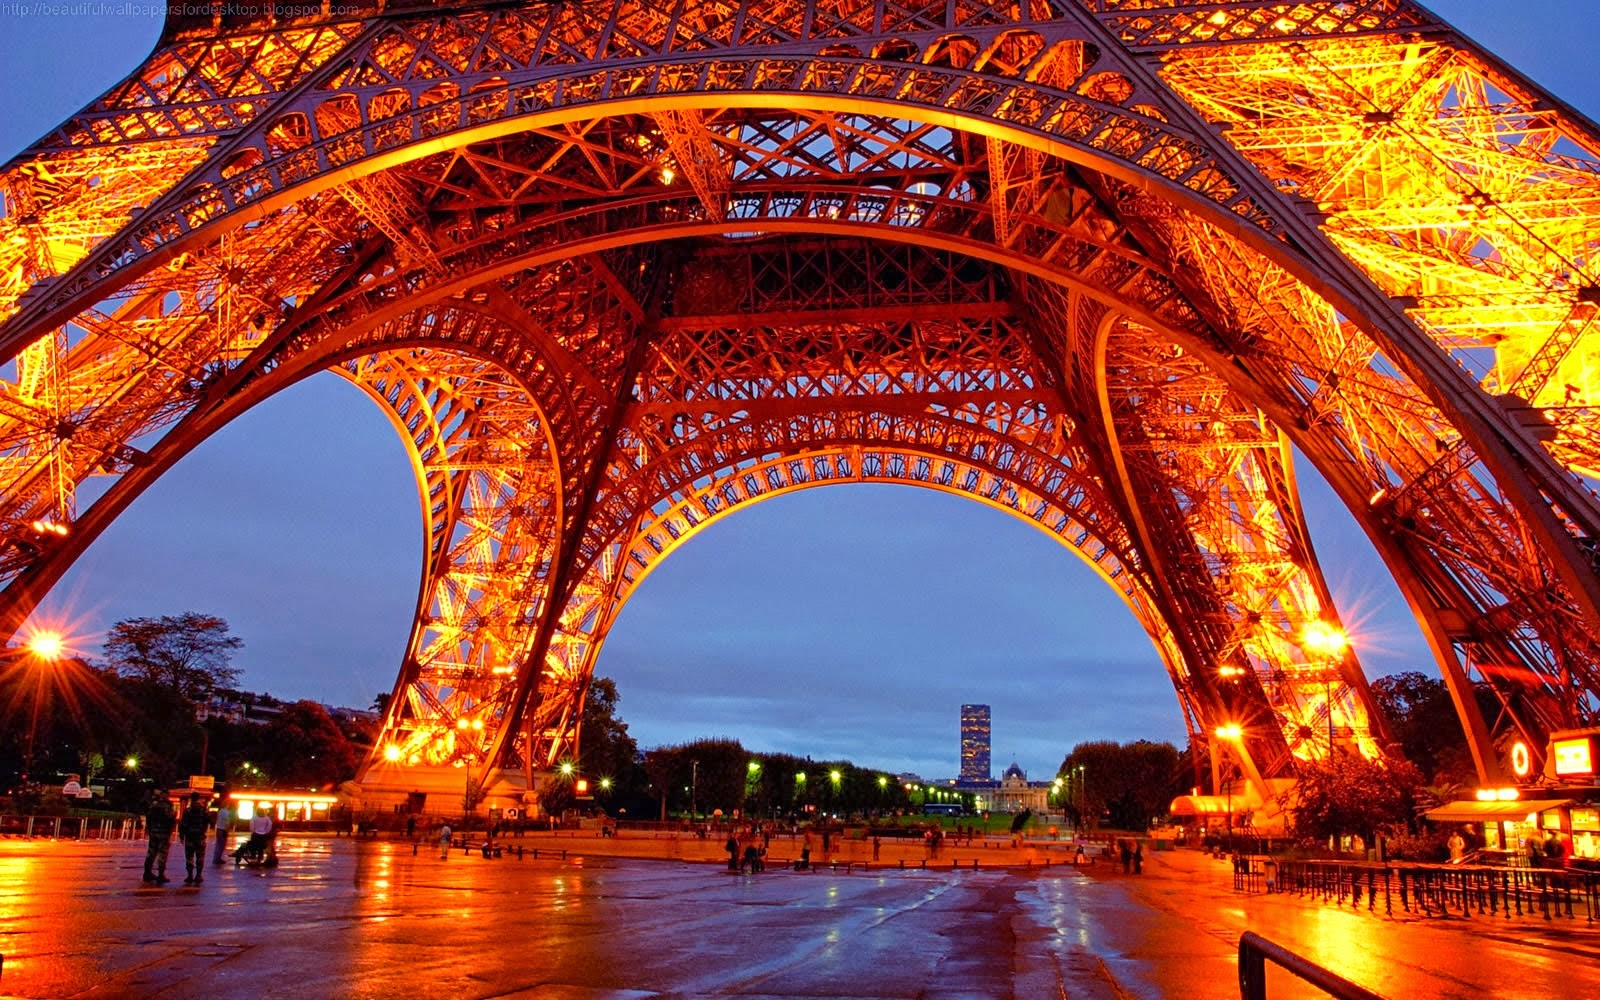 Eiffel tower wallpaper for walls image wallpapers for Wallpapering a wall